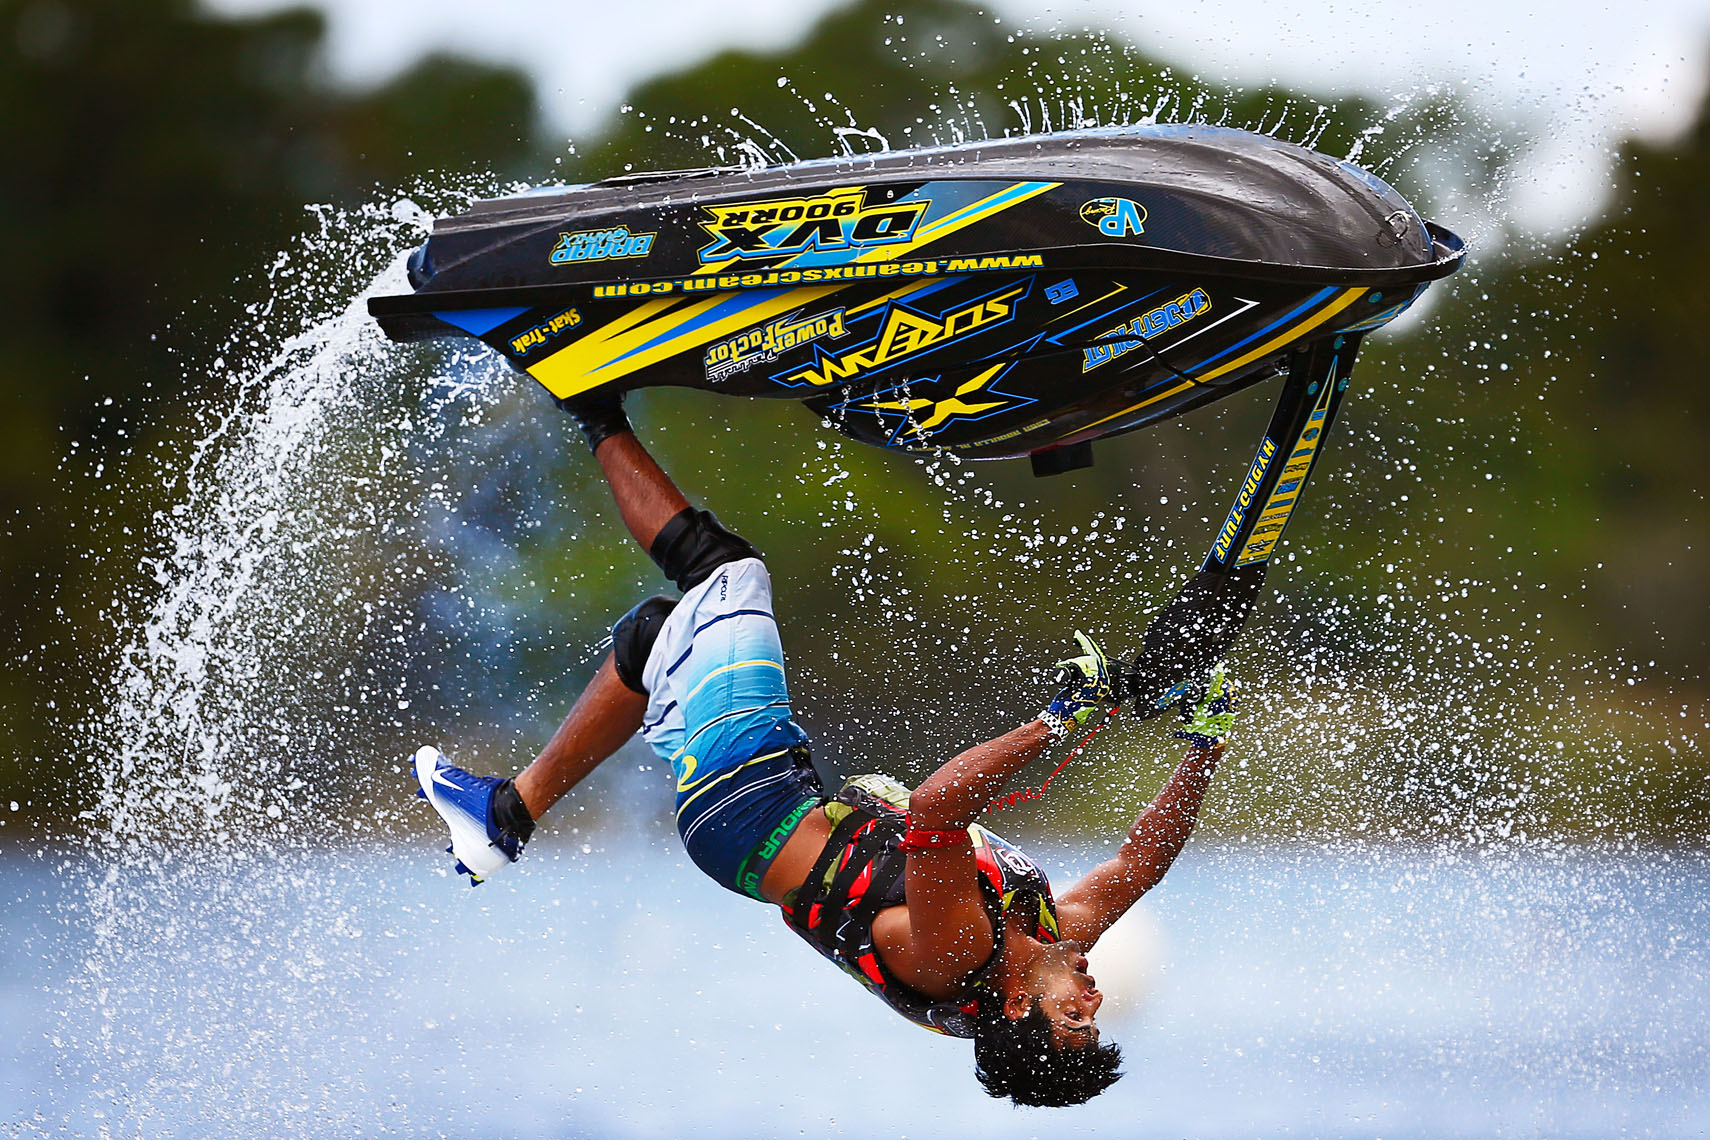 Watercross Backflip